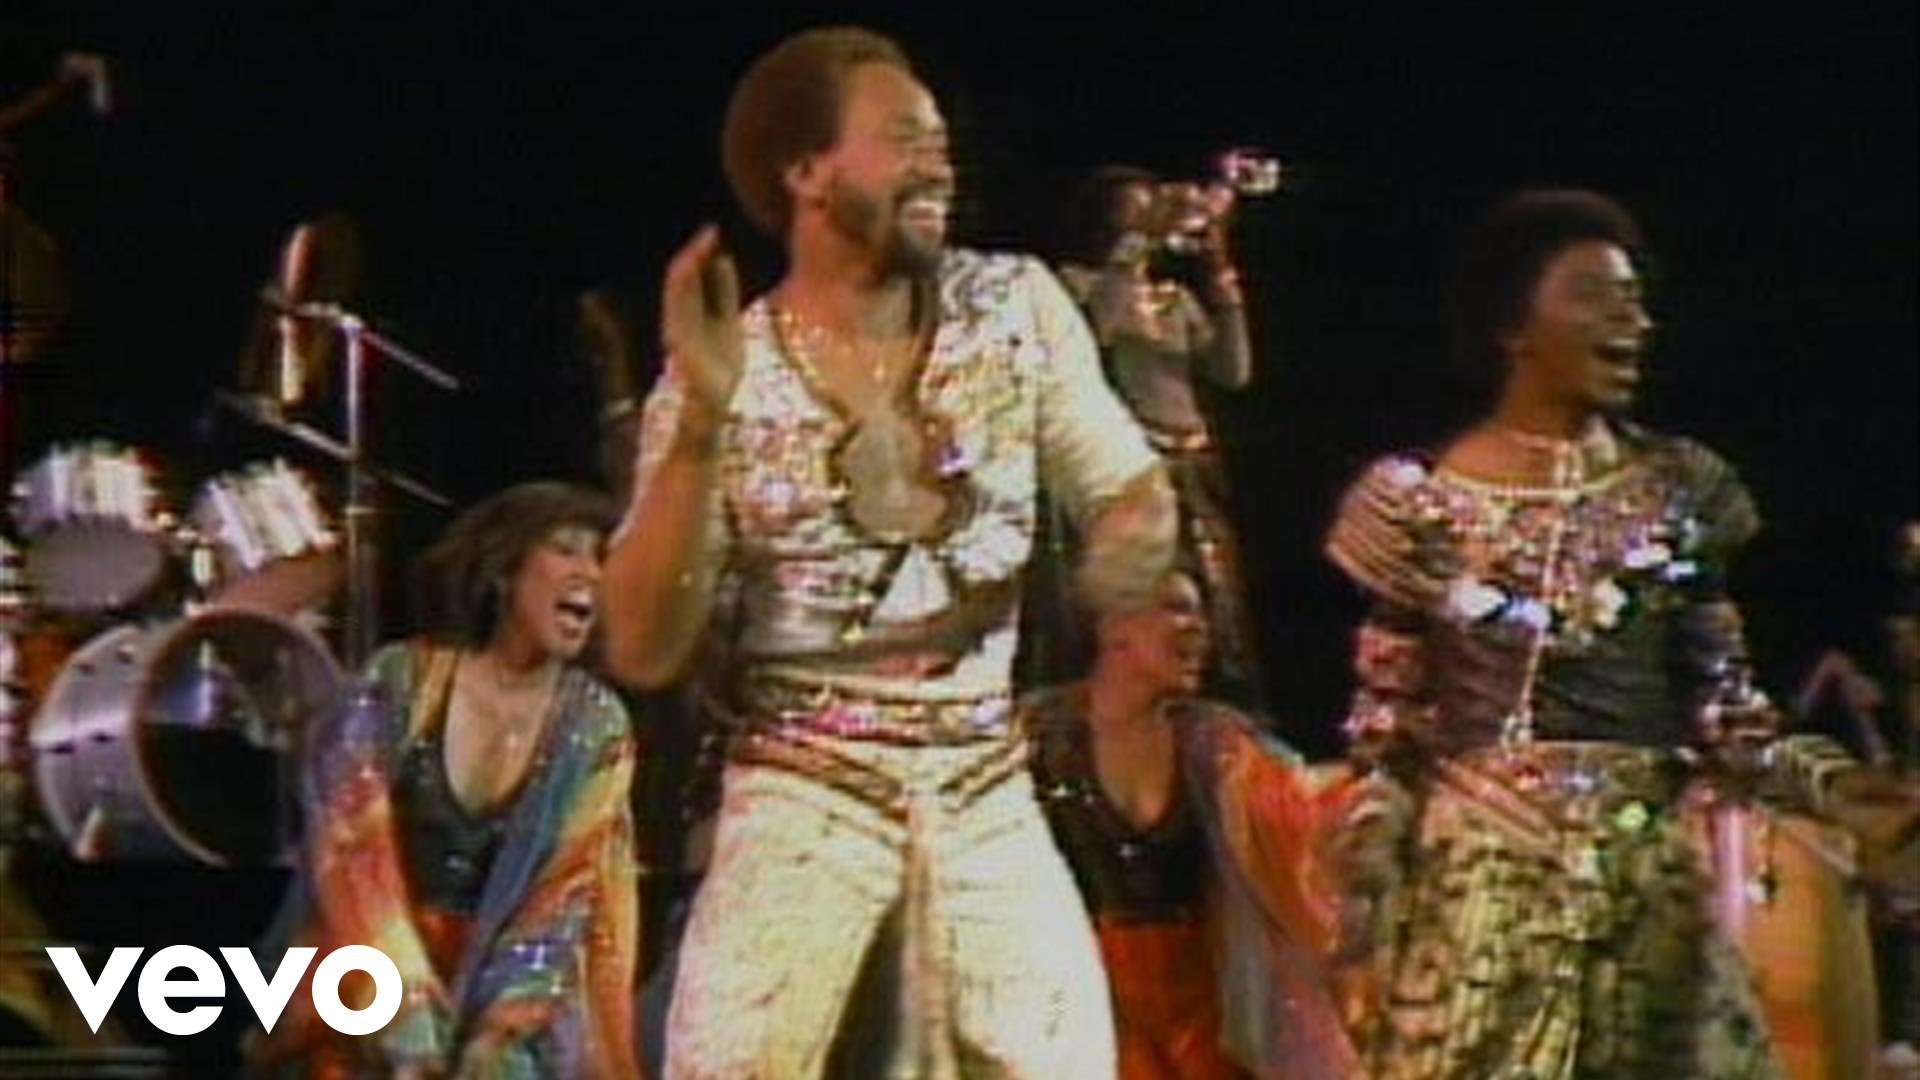 Top 10 best Earth, Wind & Fire songs of all-time